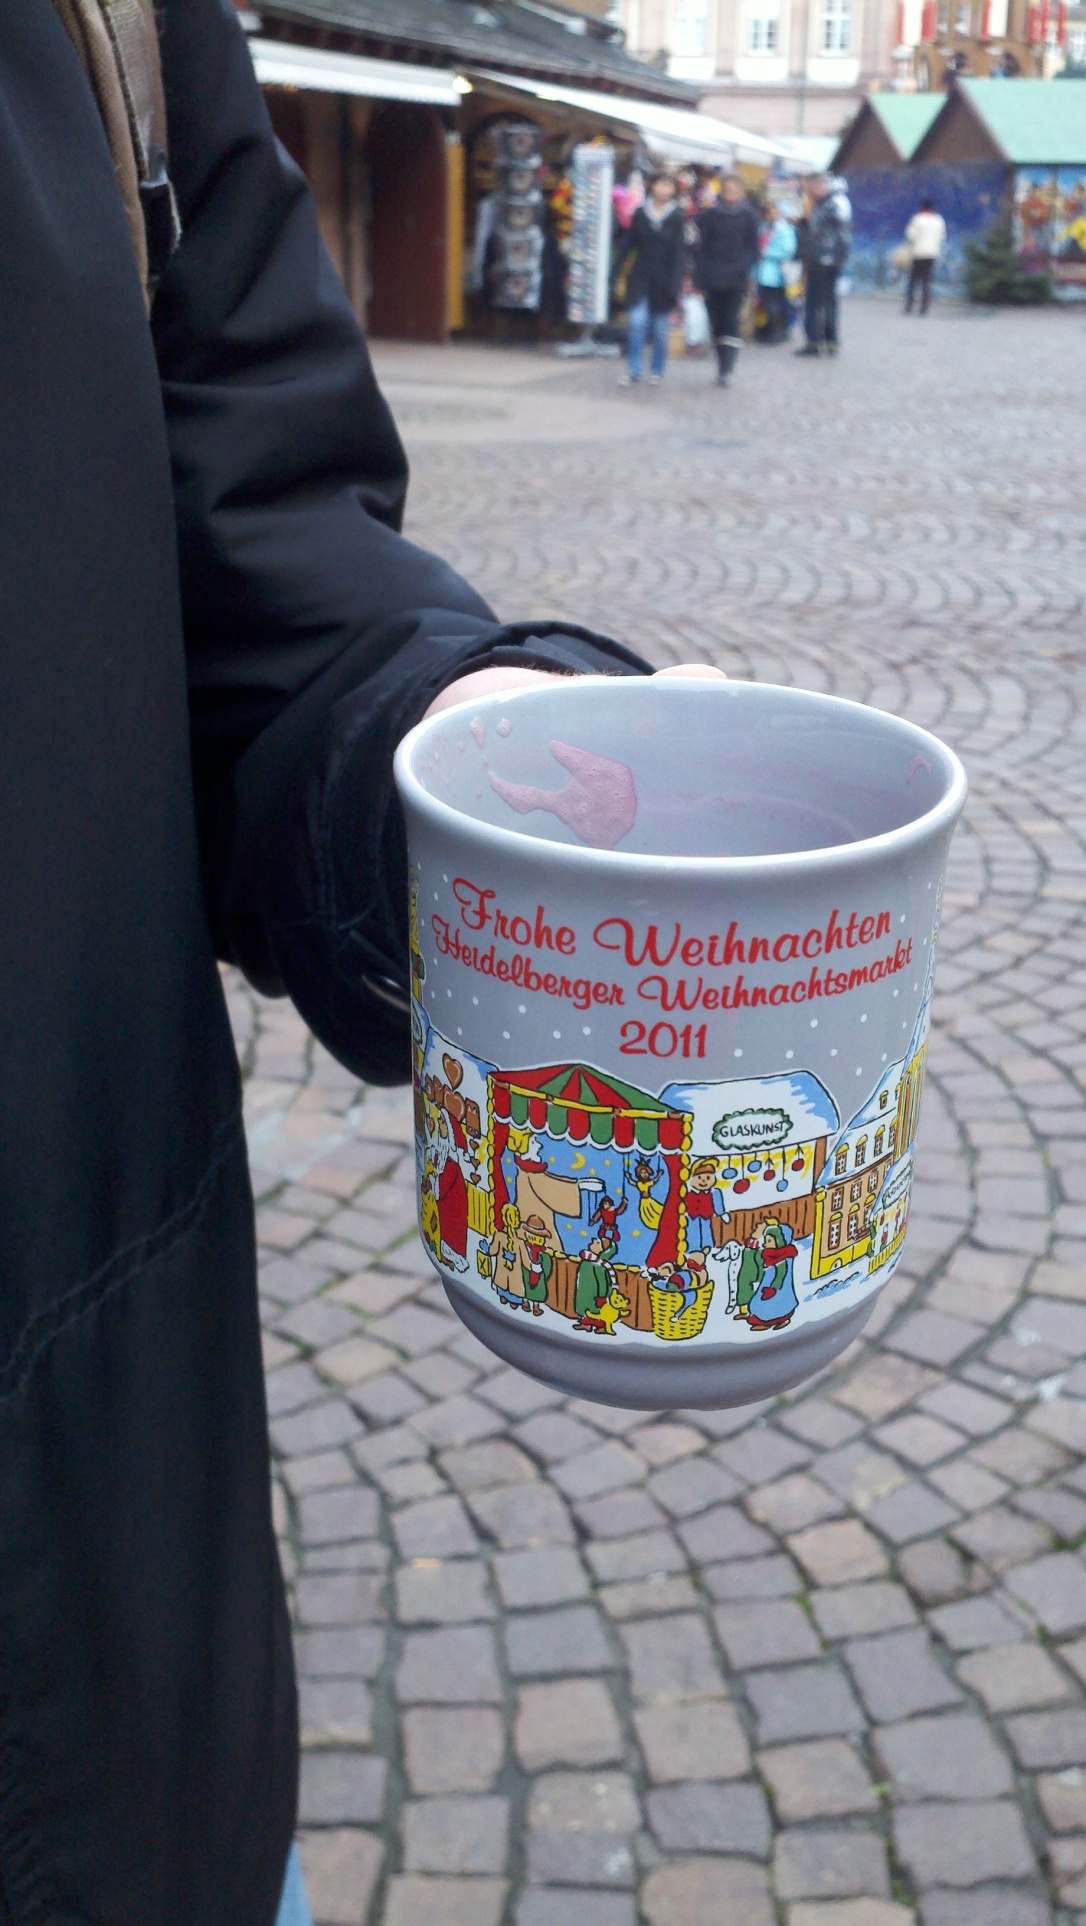 The mug from our first Glühwein at the Heidelberg Weihnachtsmarkt (Christmas Market).